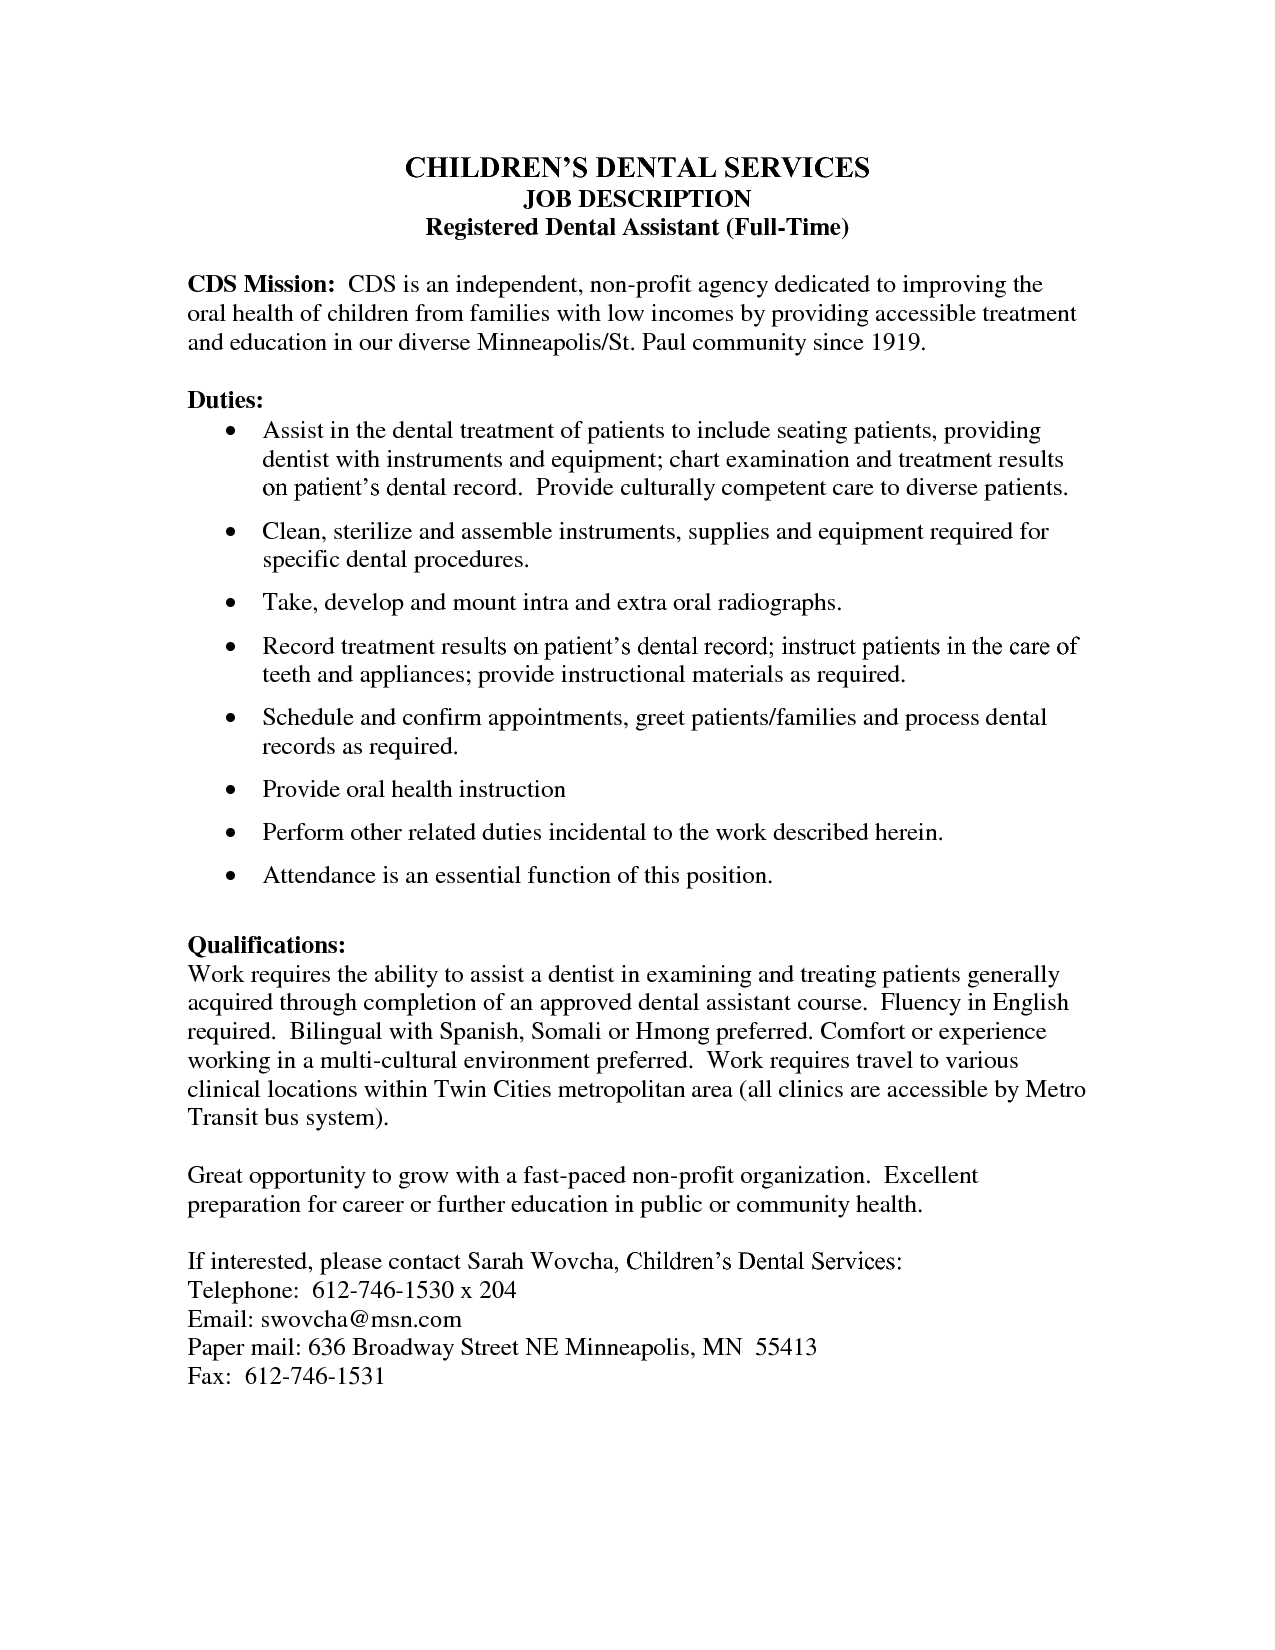 Dental Assistant Skills And Qualifications Registered Dental Assistant Job Description